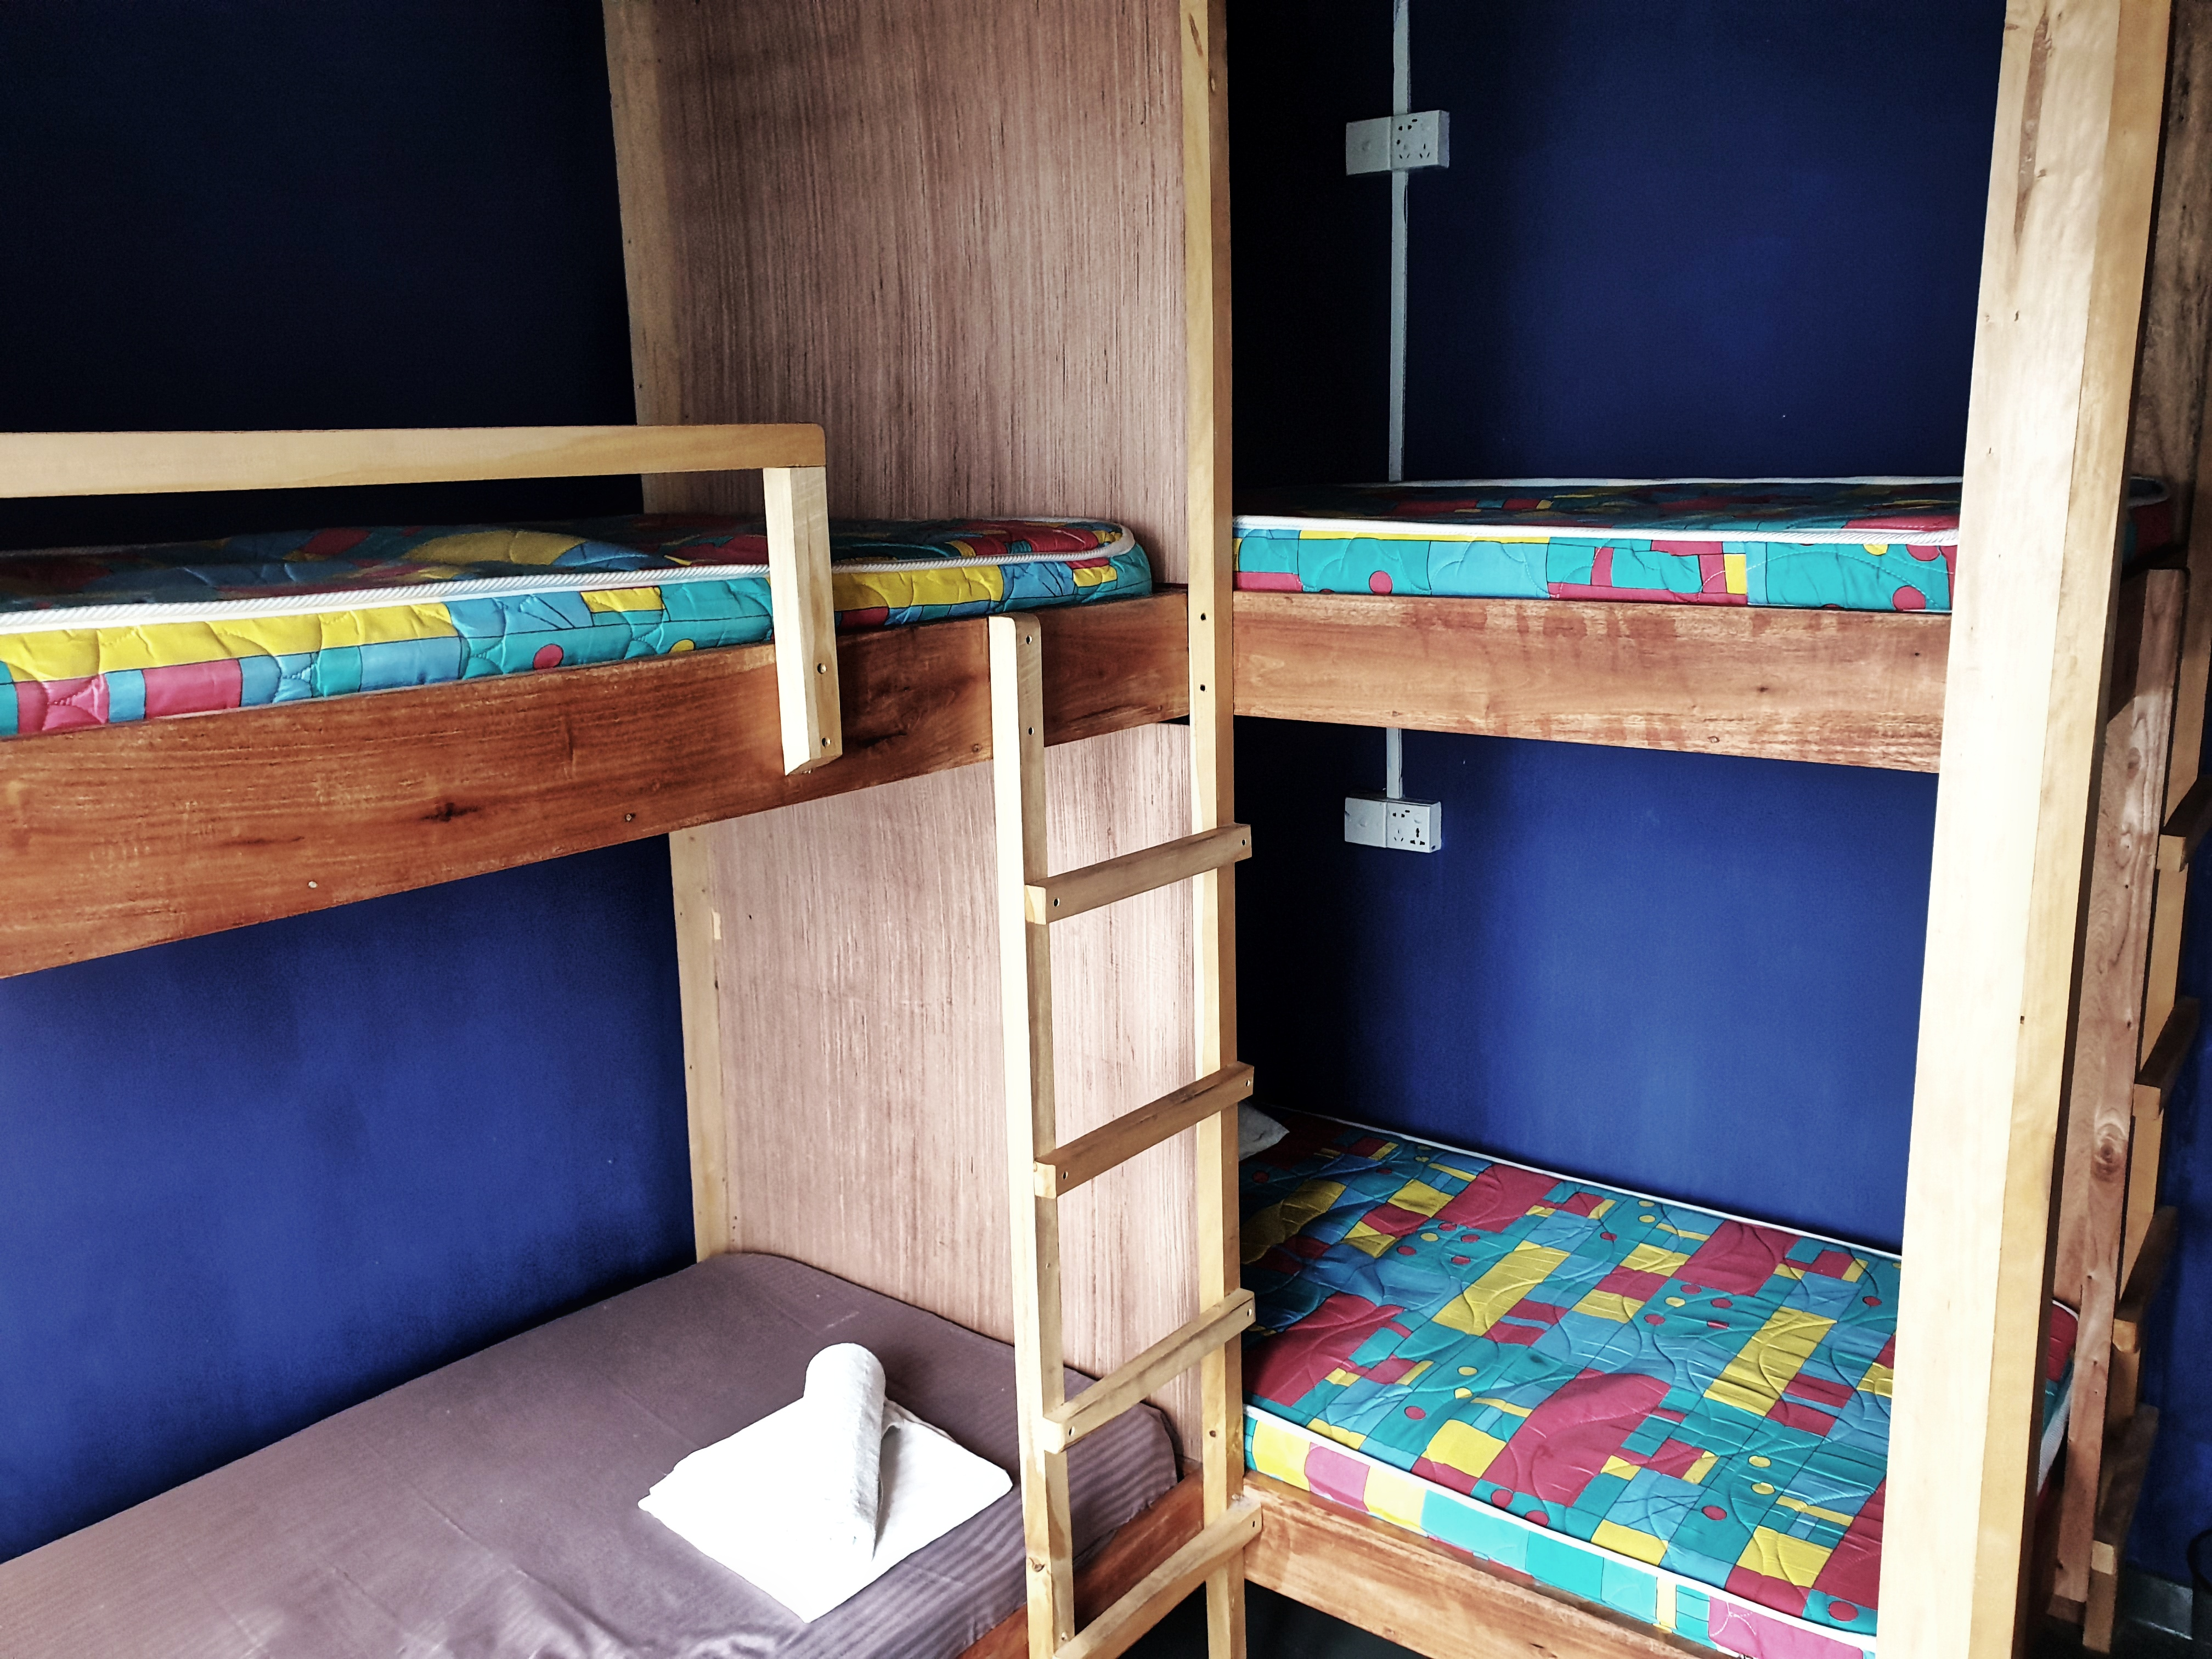 Jays Bunks Hostel, Kandy, Sri Lanka